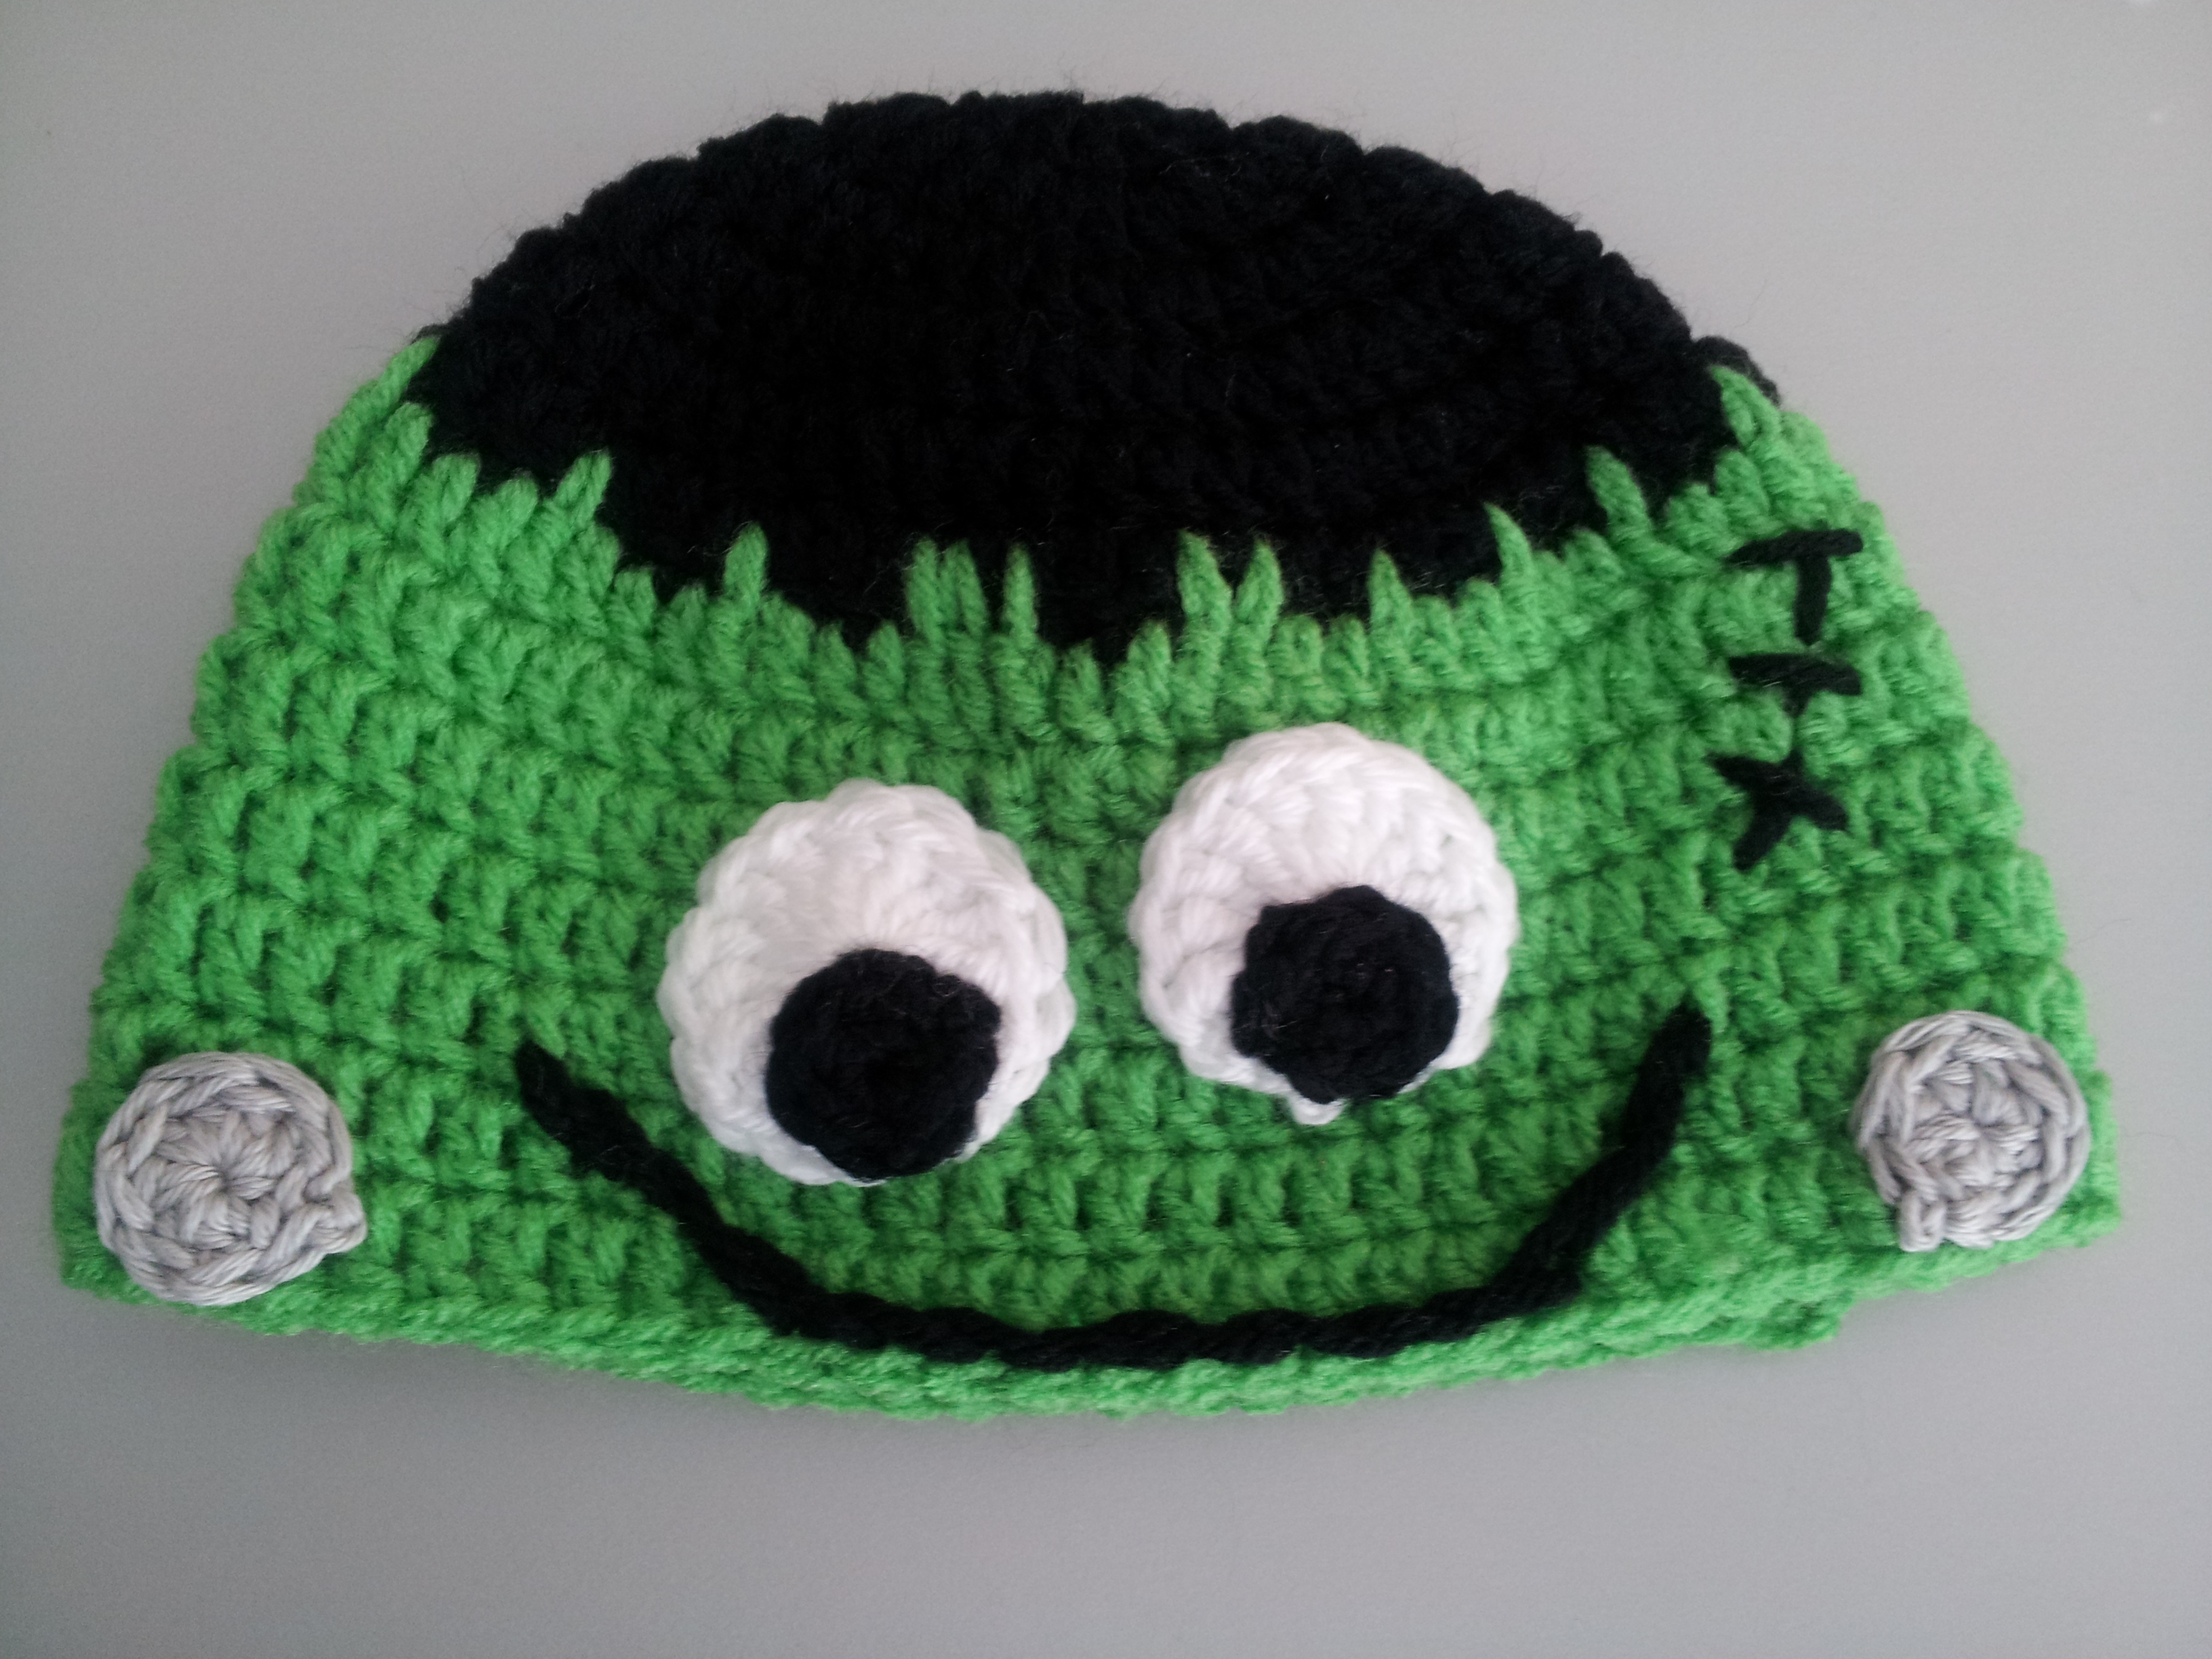 b7891b0d084 Monster Beanie Hat · Needles and Stitches · Online Store Powered by ...